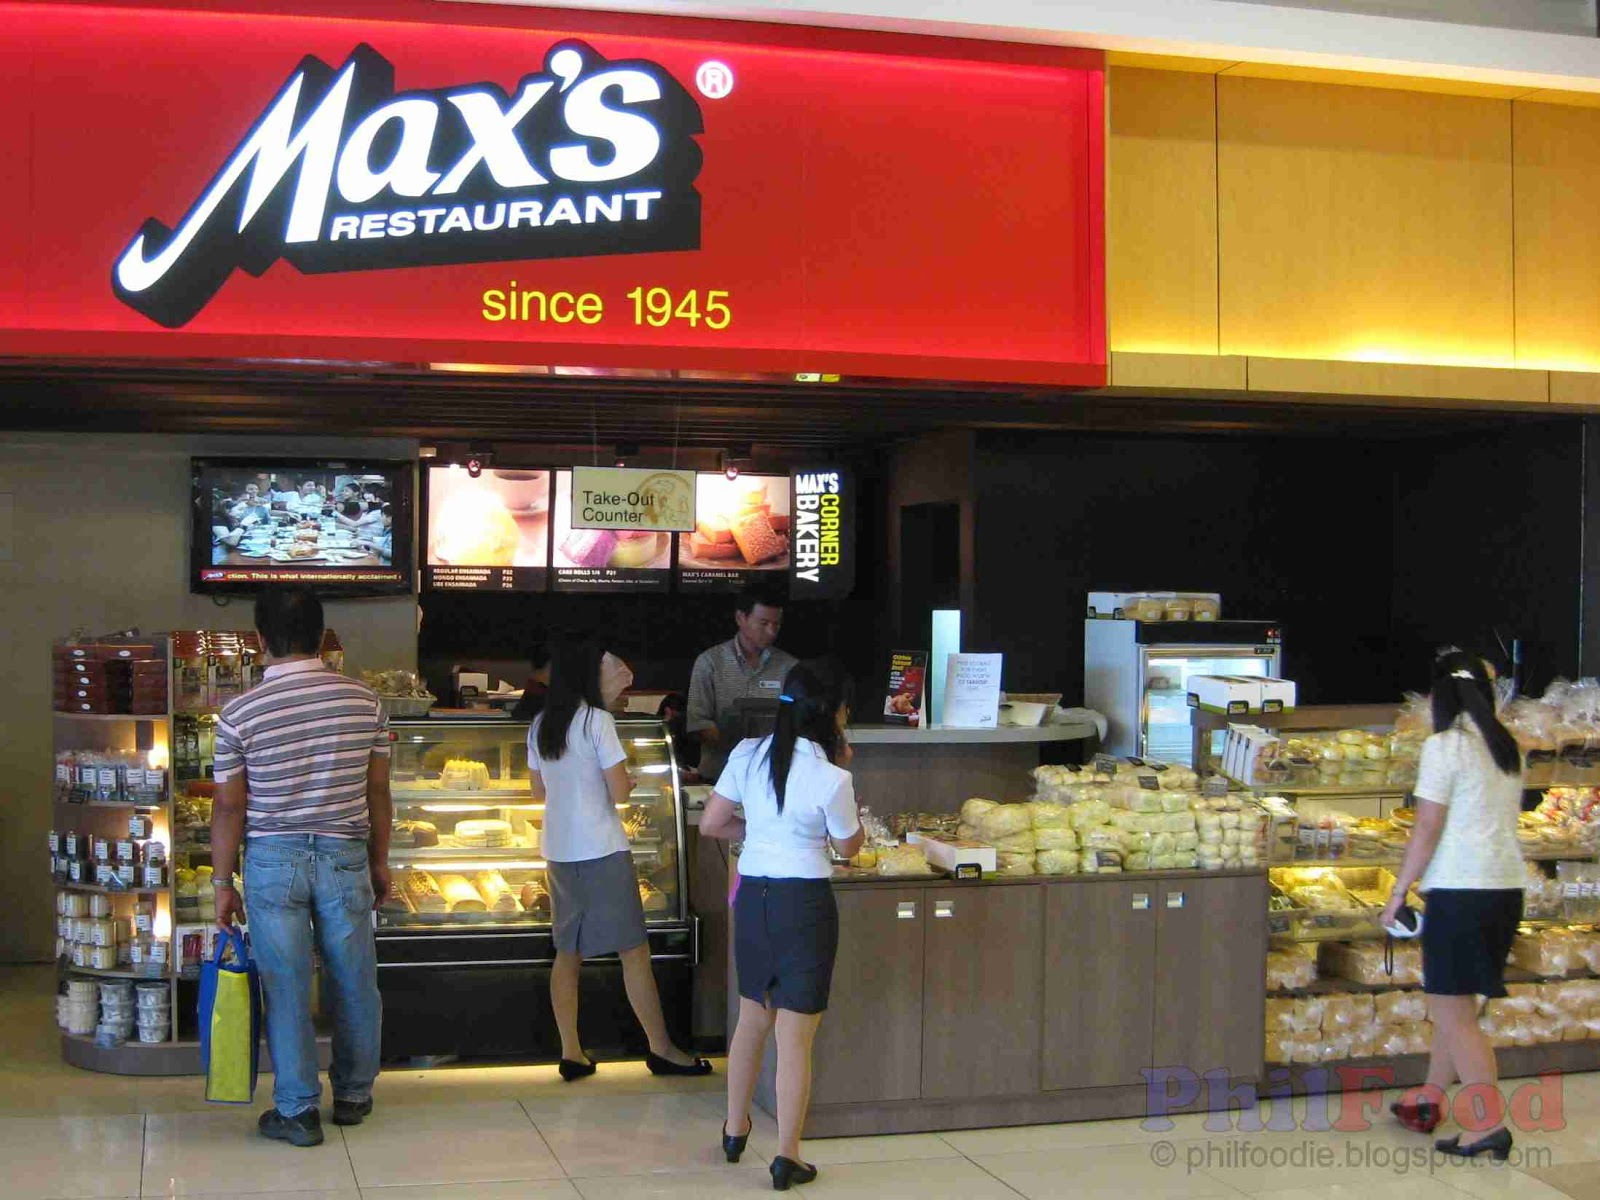 maxs restaurant Max's restaurant's beginnings started in 1945, after world war ii maximo gimenez, a stanford - educated teacher, befriended the american occupation troops.